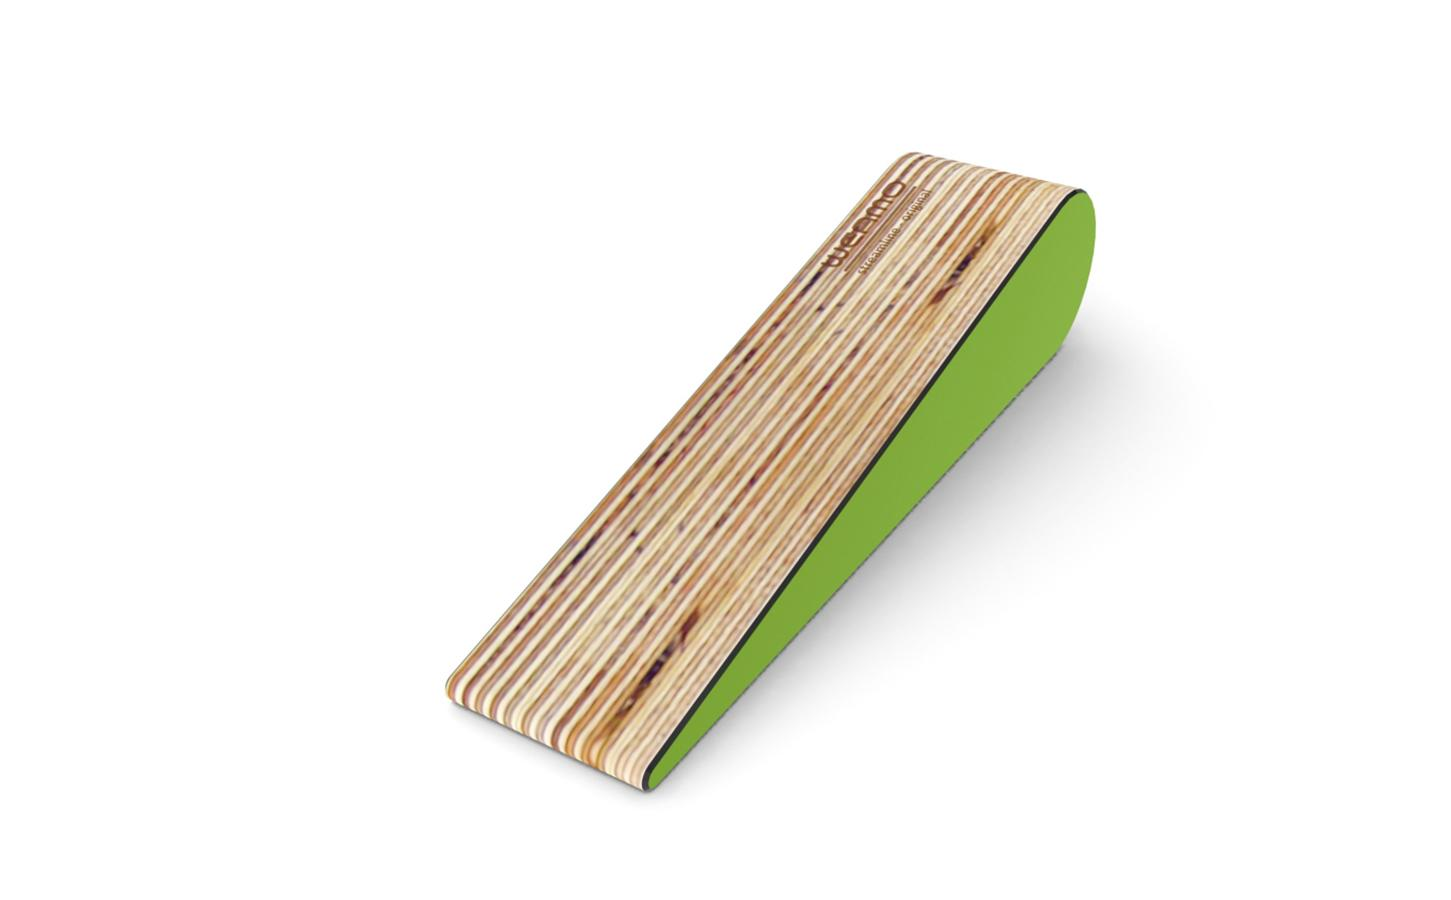 Streamline Original Doorstop _ Peapod Green